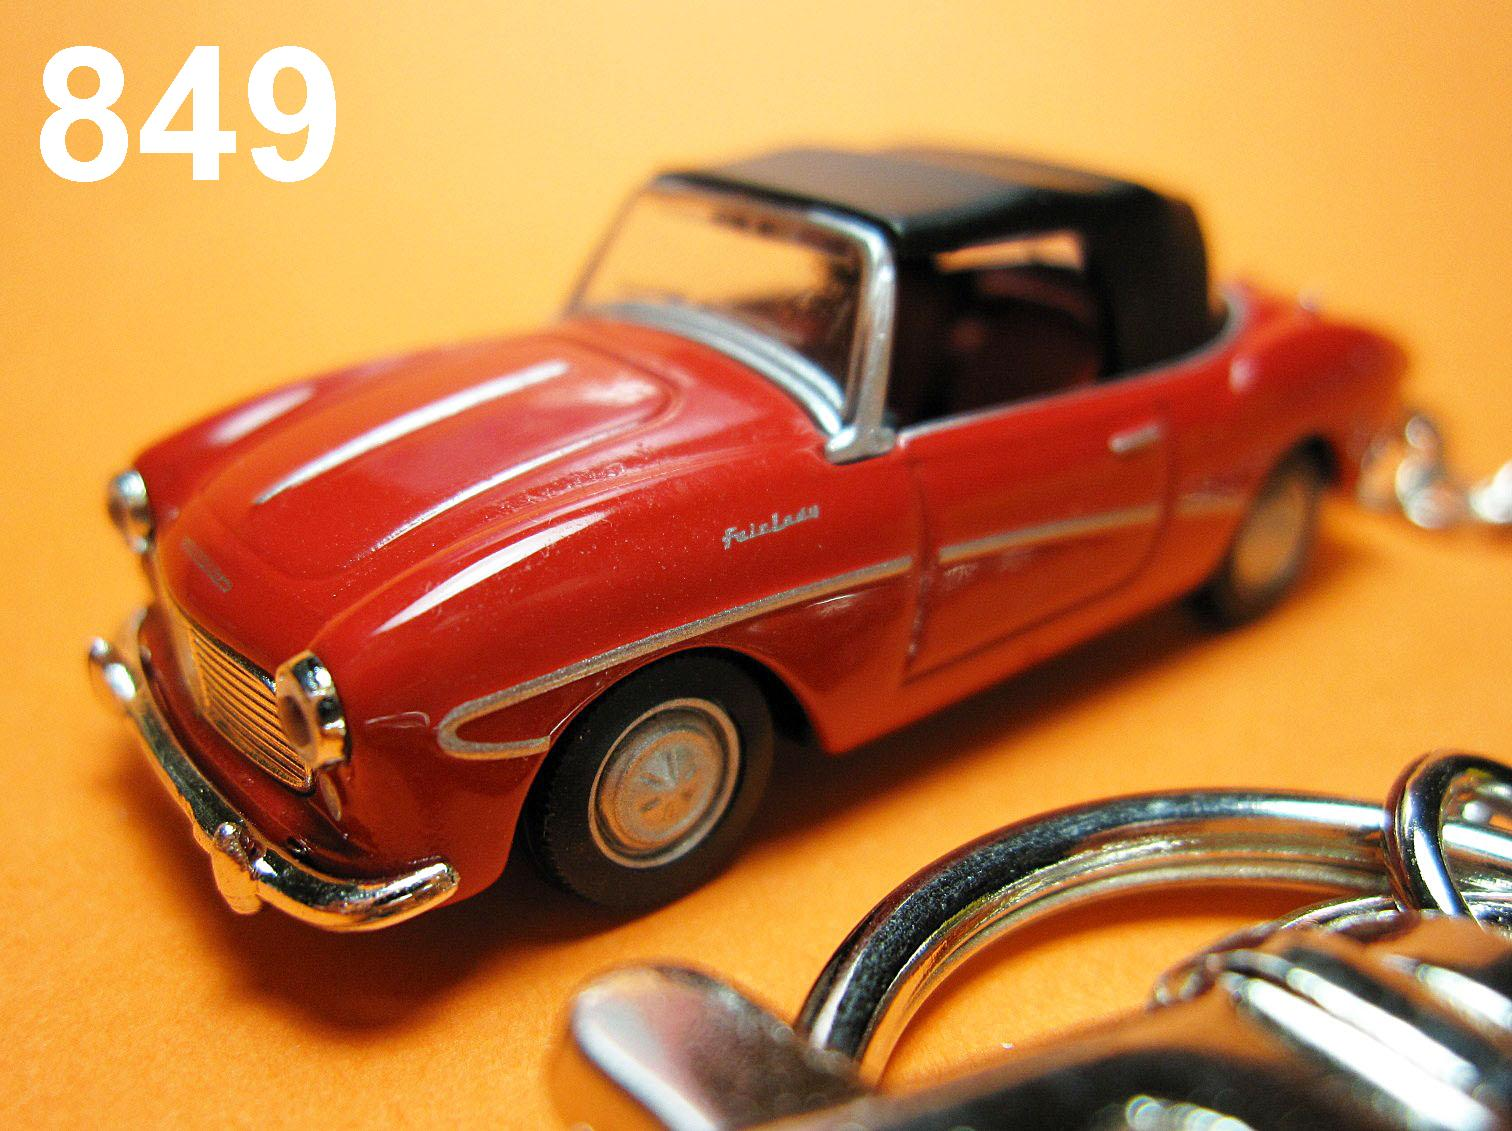 Classic Datsun Fairlady 1200 (Red) Die-cast Key Chain